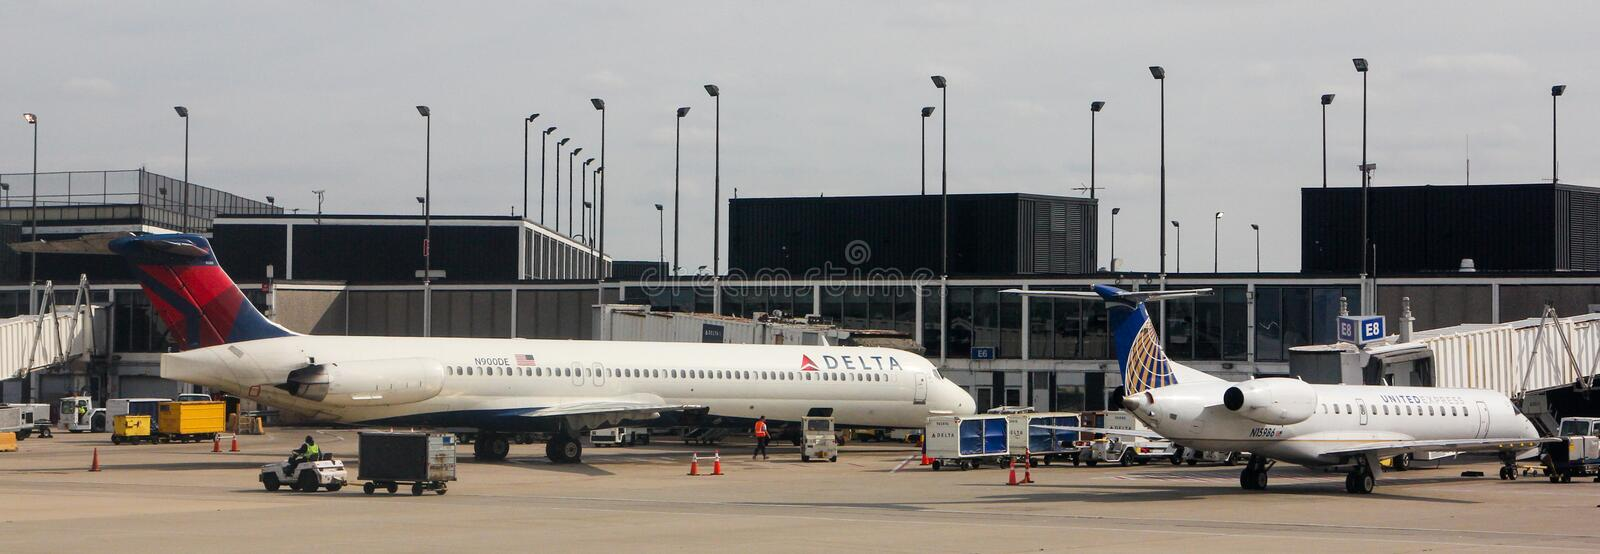 Delta Terminal at O'Hare Airport, Chicago, IL. stock images